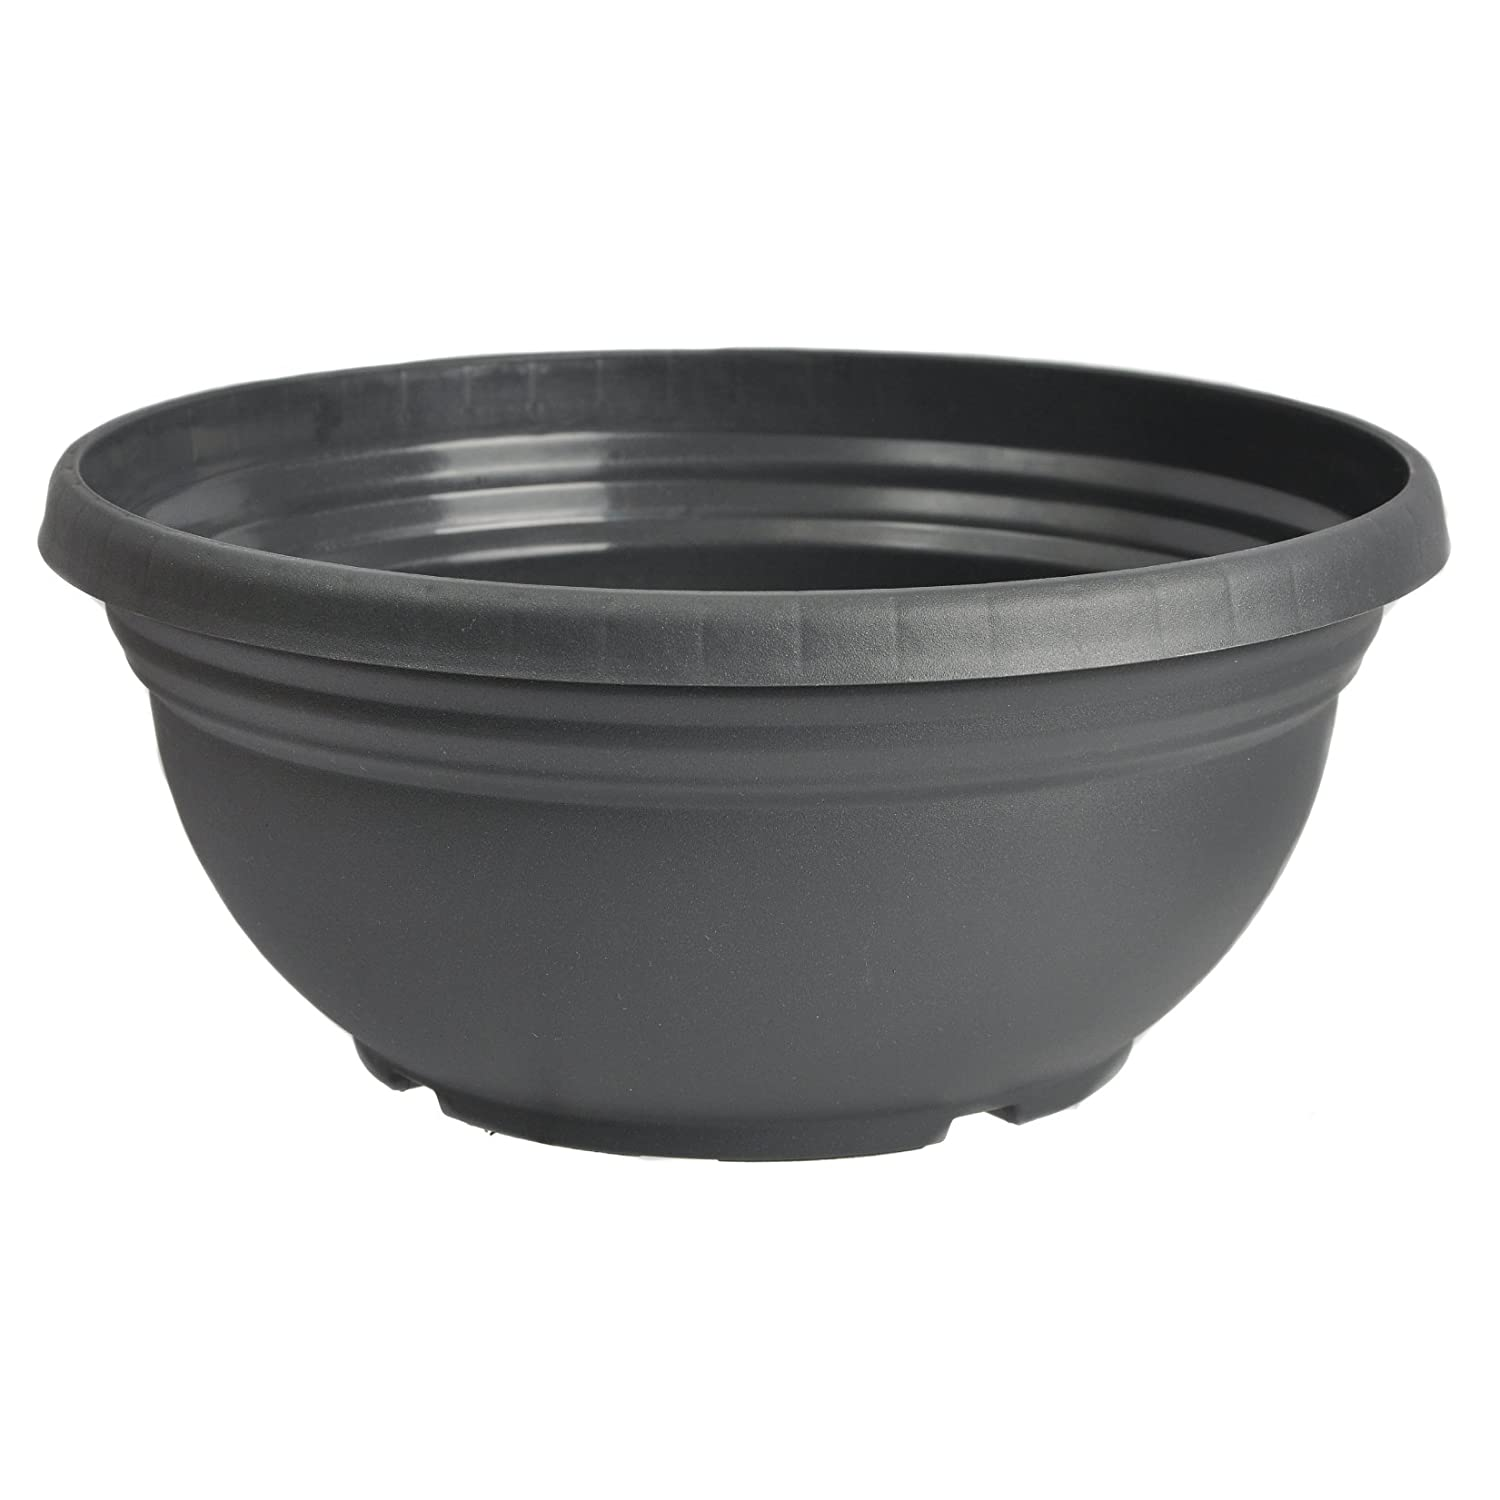 5 Orion Anthracite colour Bulb Bowls 27cm diameter